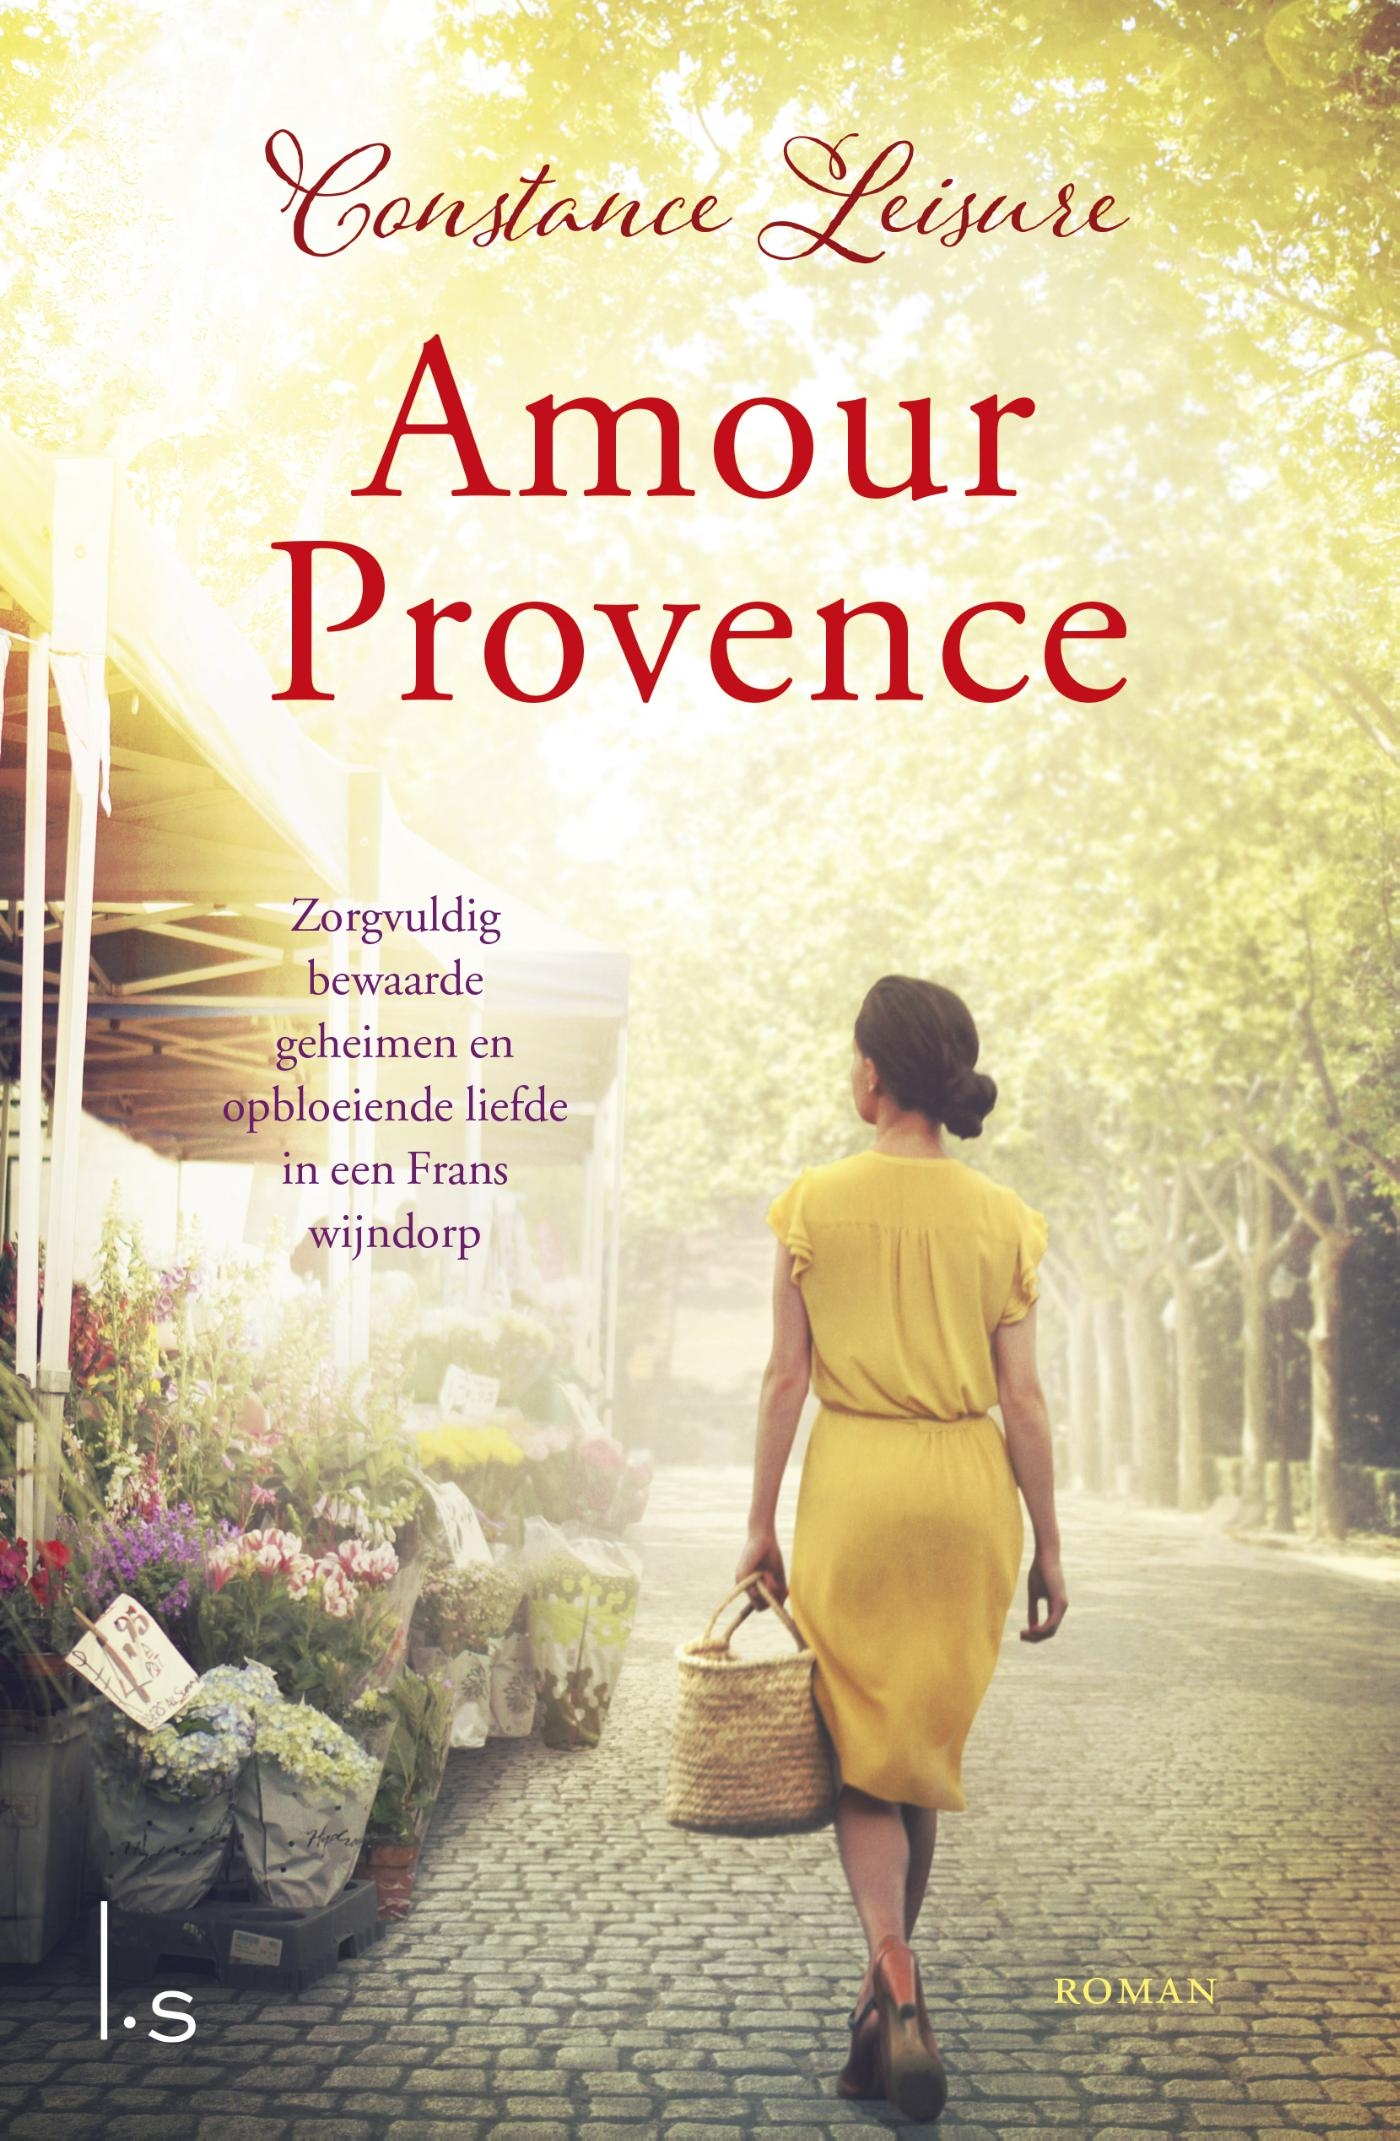 Amour Provence – Constance Leisure